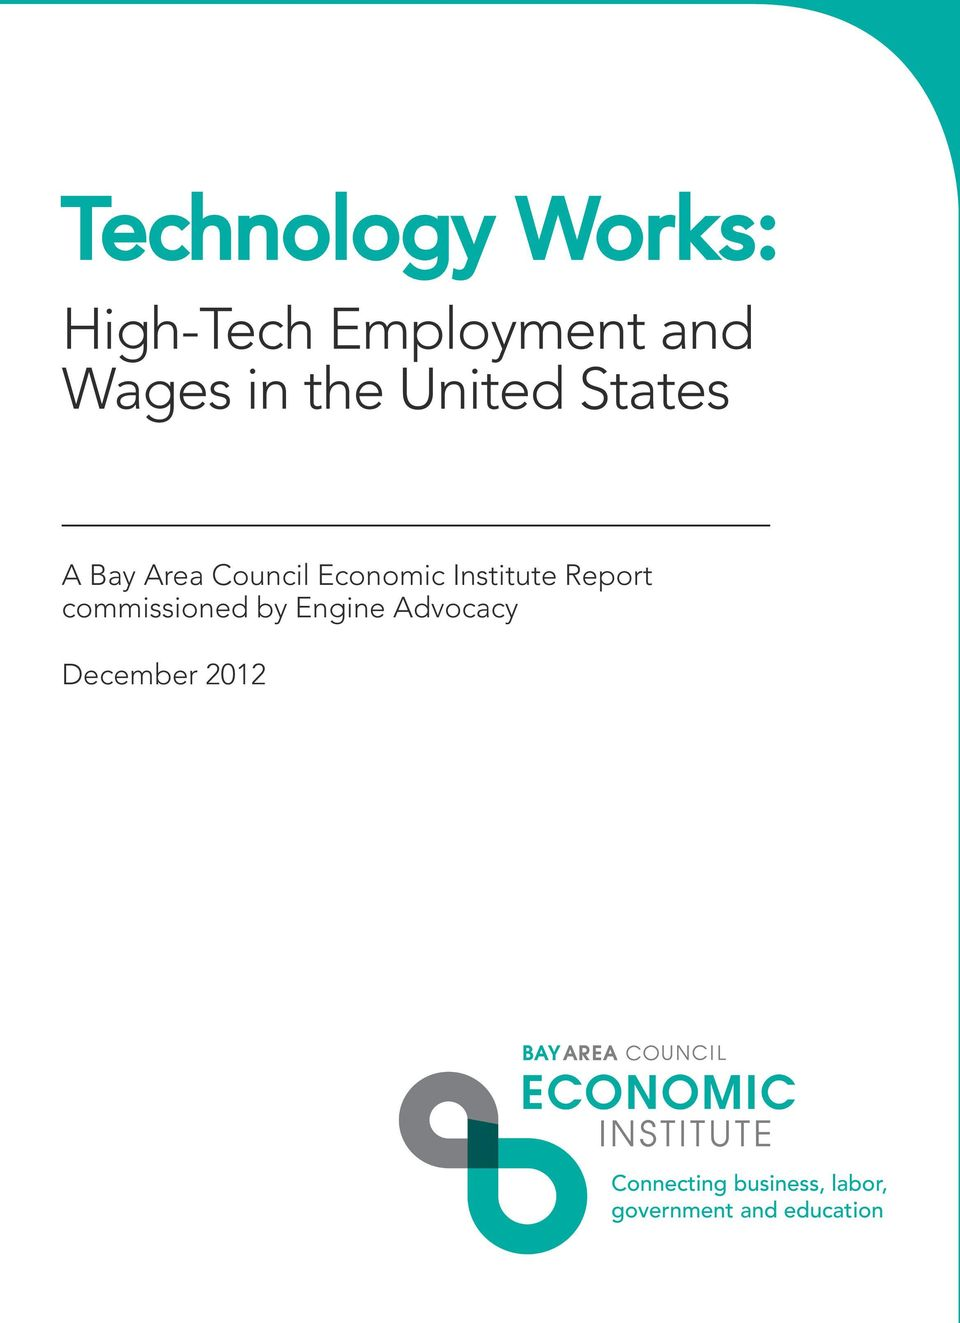 Institute Report commissioned by Engine Advocacy